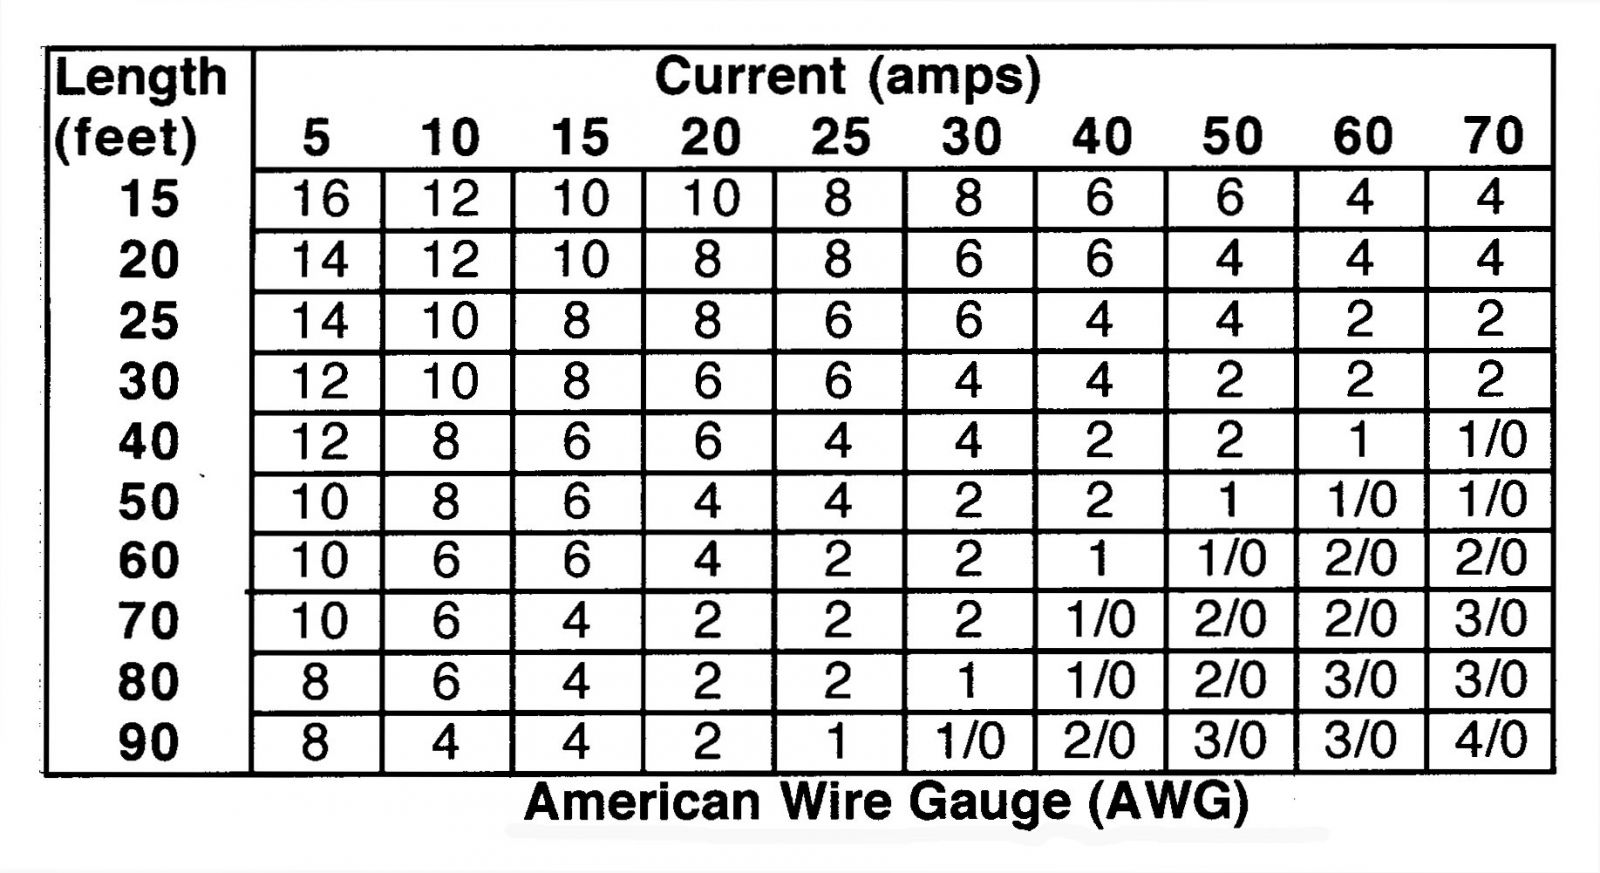 Dc voltage wire size wire center grounding electrical systems hotrod hotline rh hotrodhotline com dc voltage wire size chart dc voltage drop wire size calculator greentooth Image collections